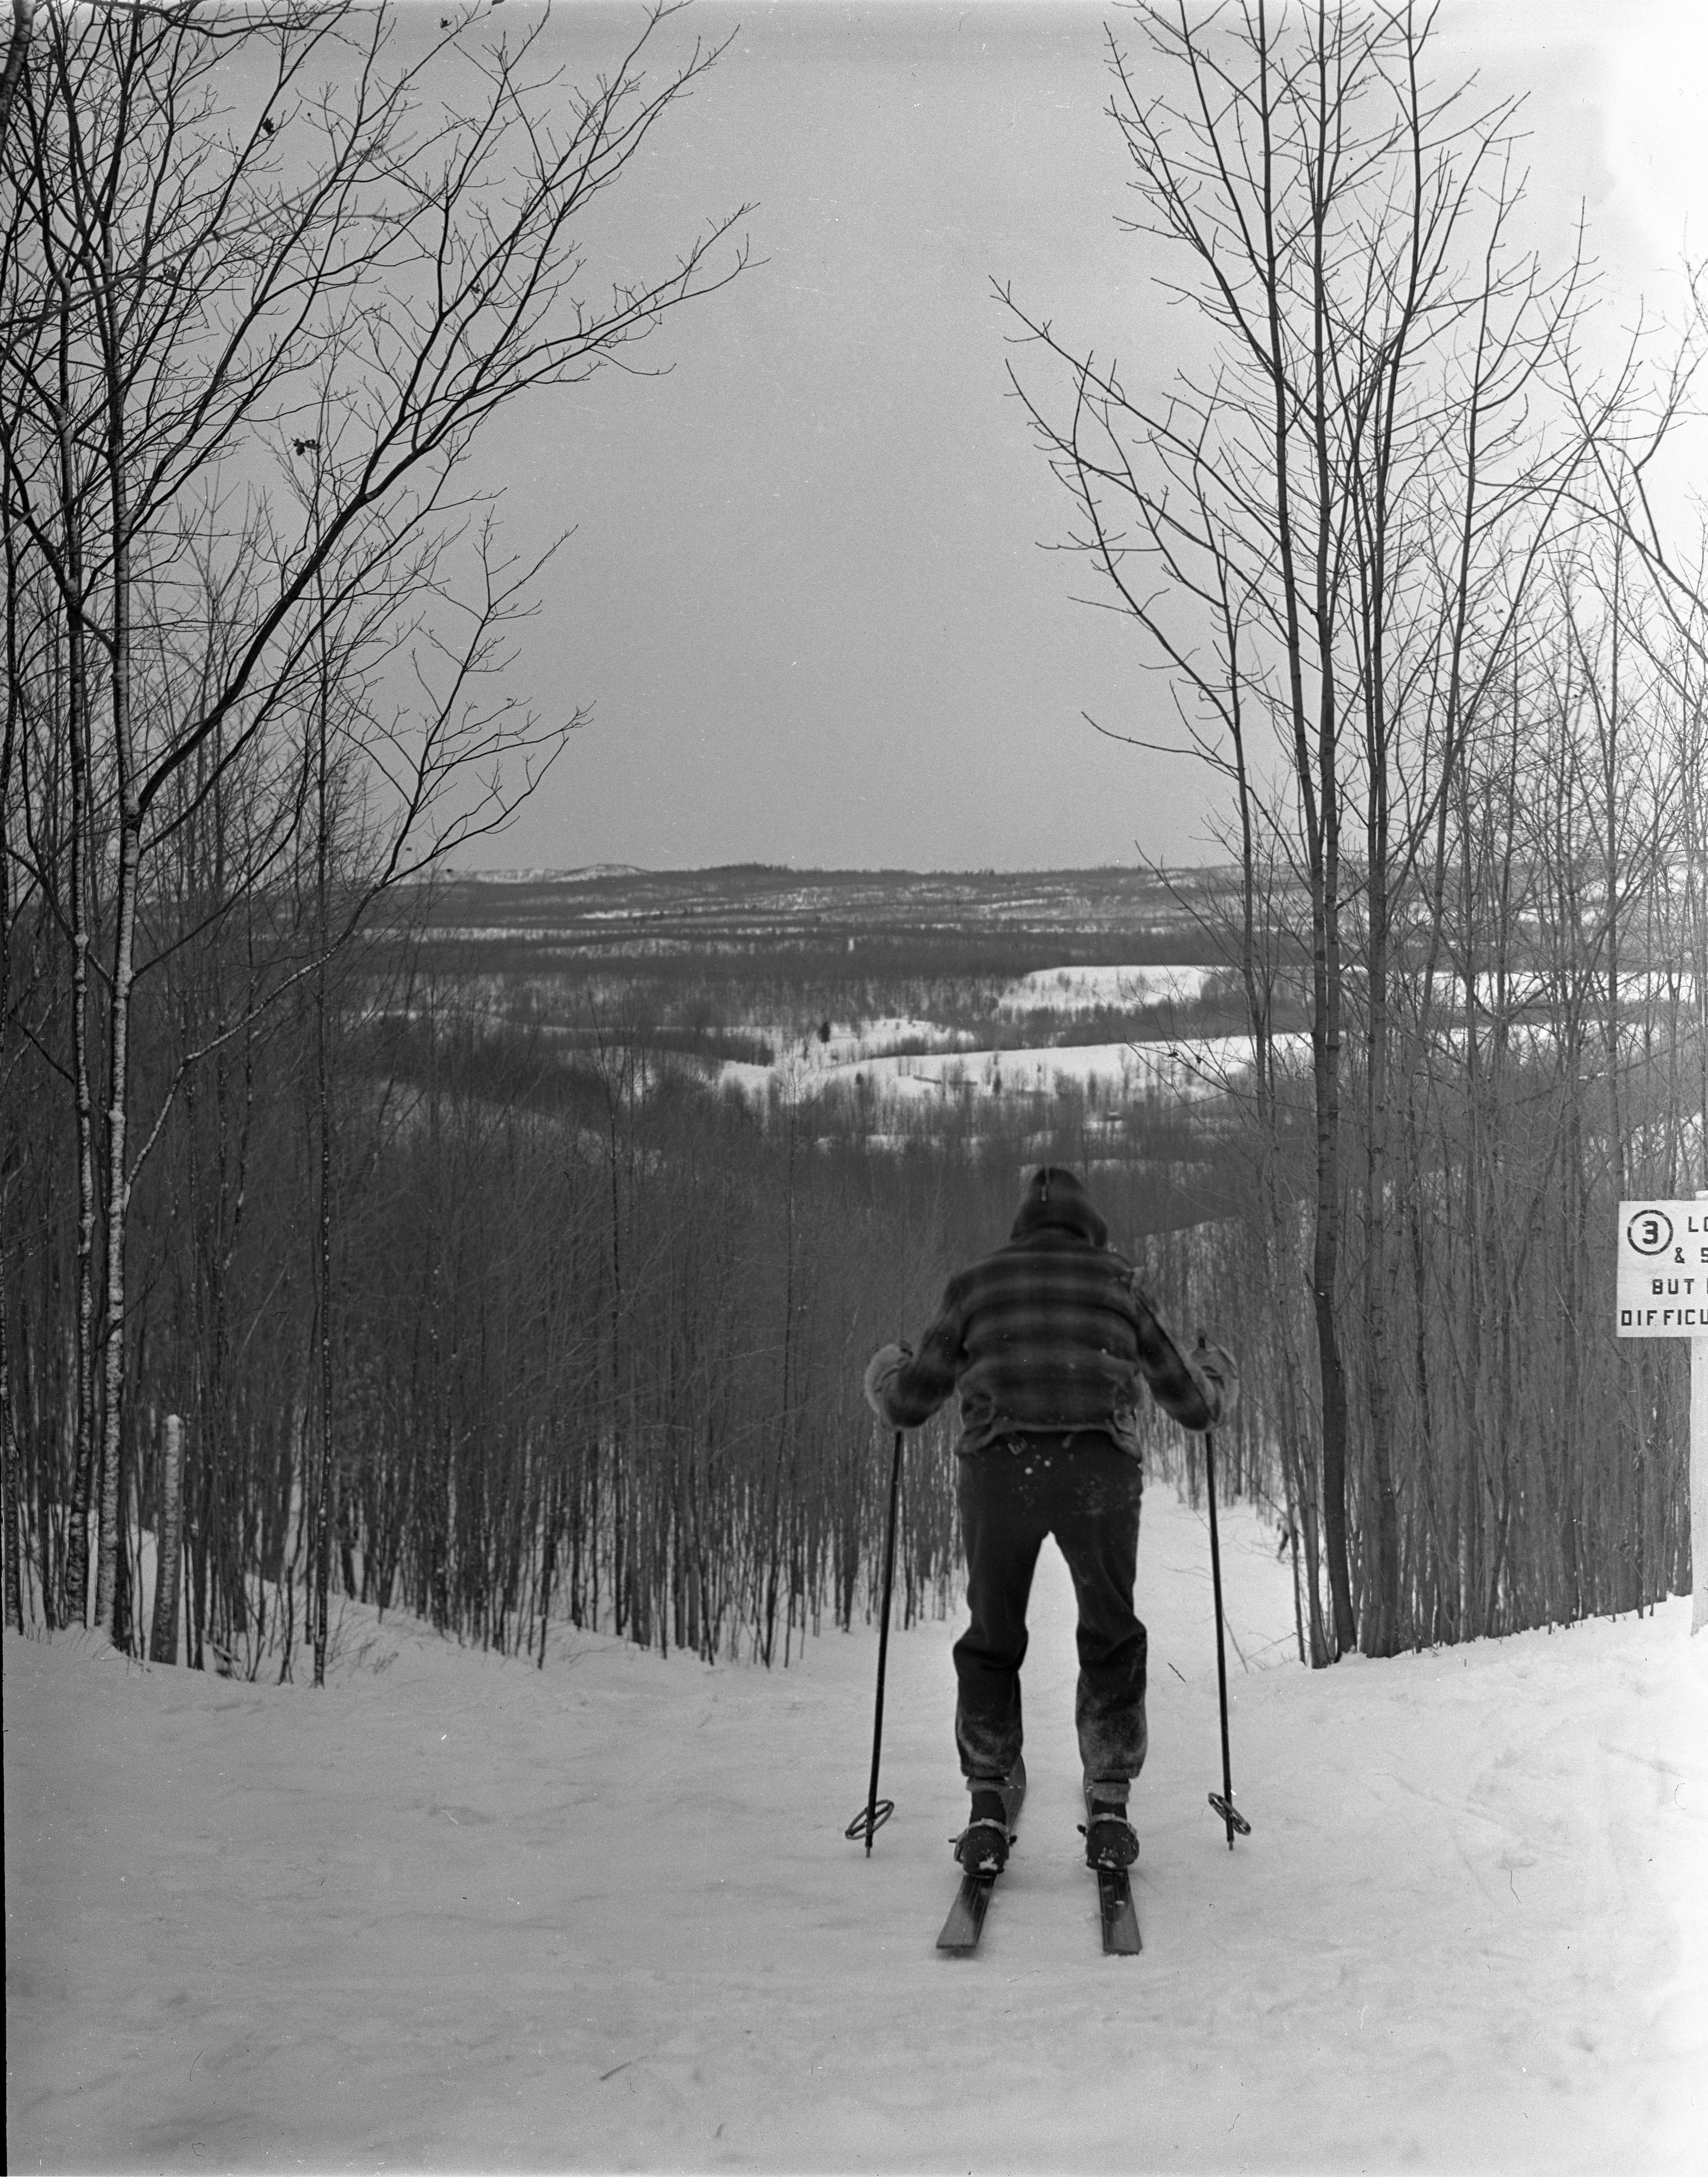 Skier Stands Atop Ski Run At Caberfae, February 1940 image